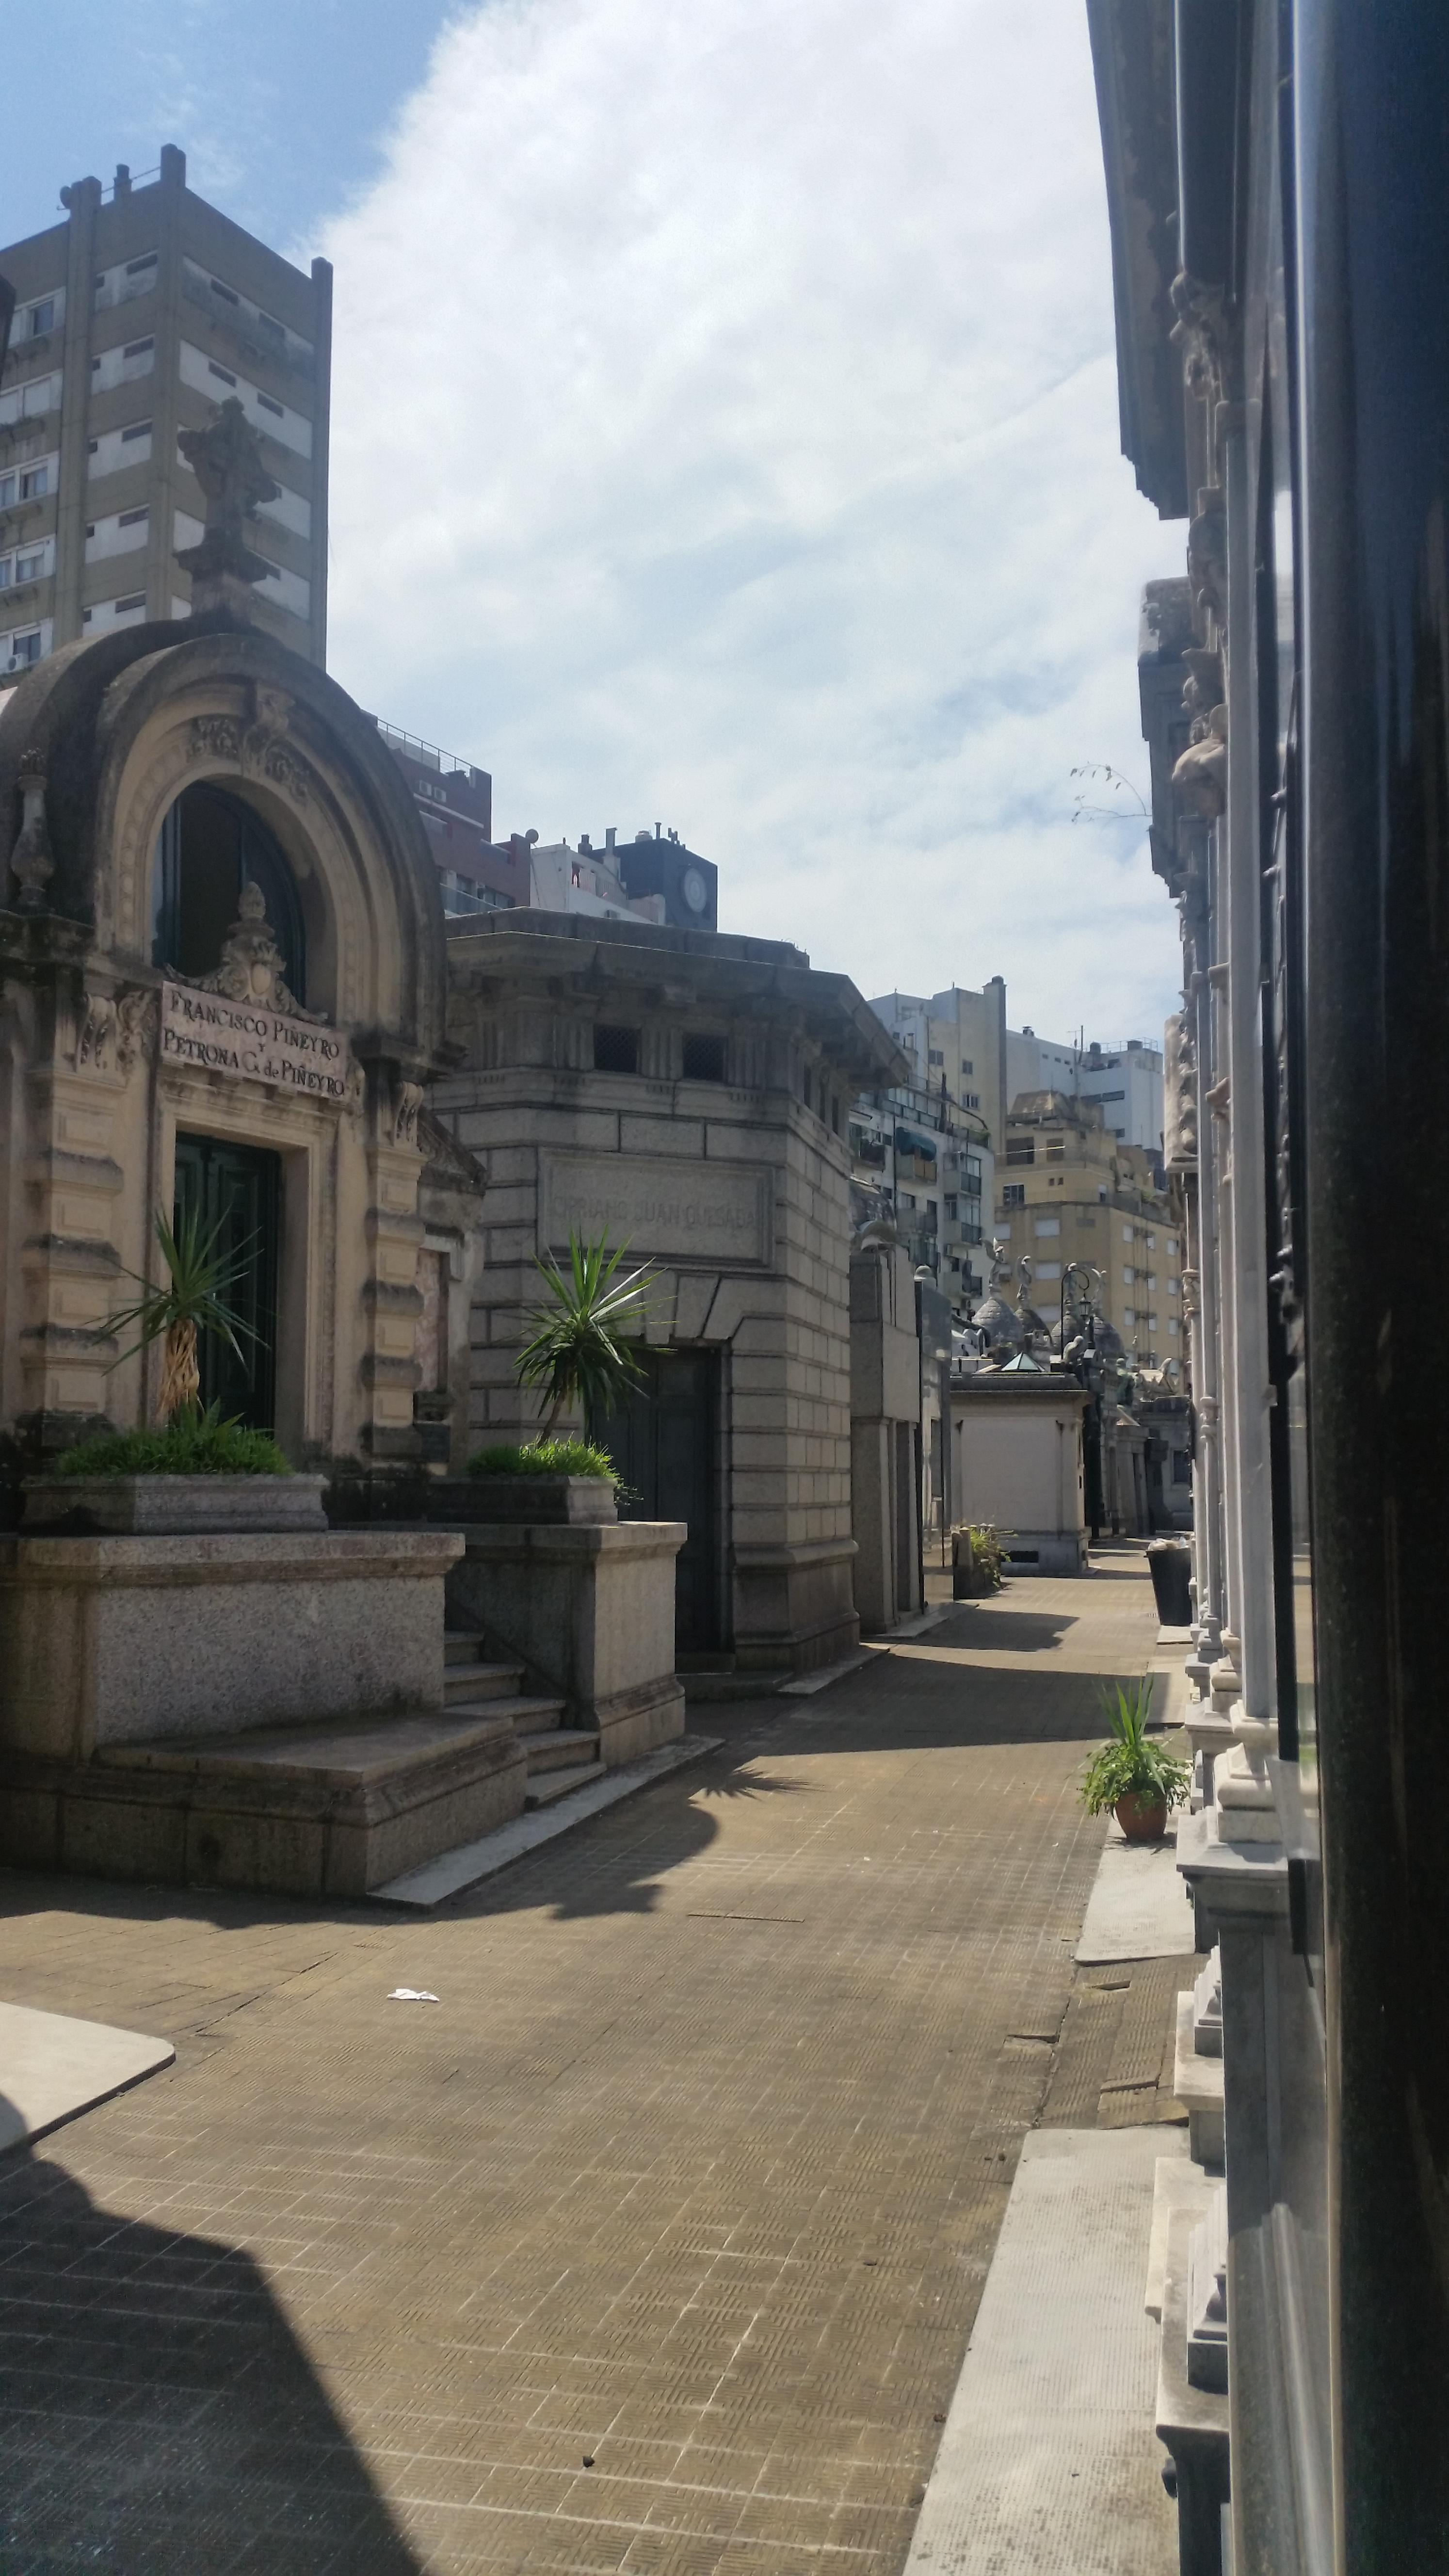 CAPAStudyAbroad_BuenosAires_Spring2017_From Elizabeth Withers - Arrival 7.jpg